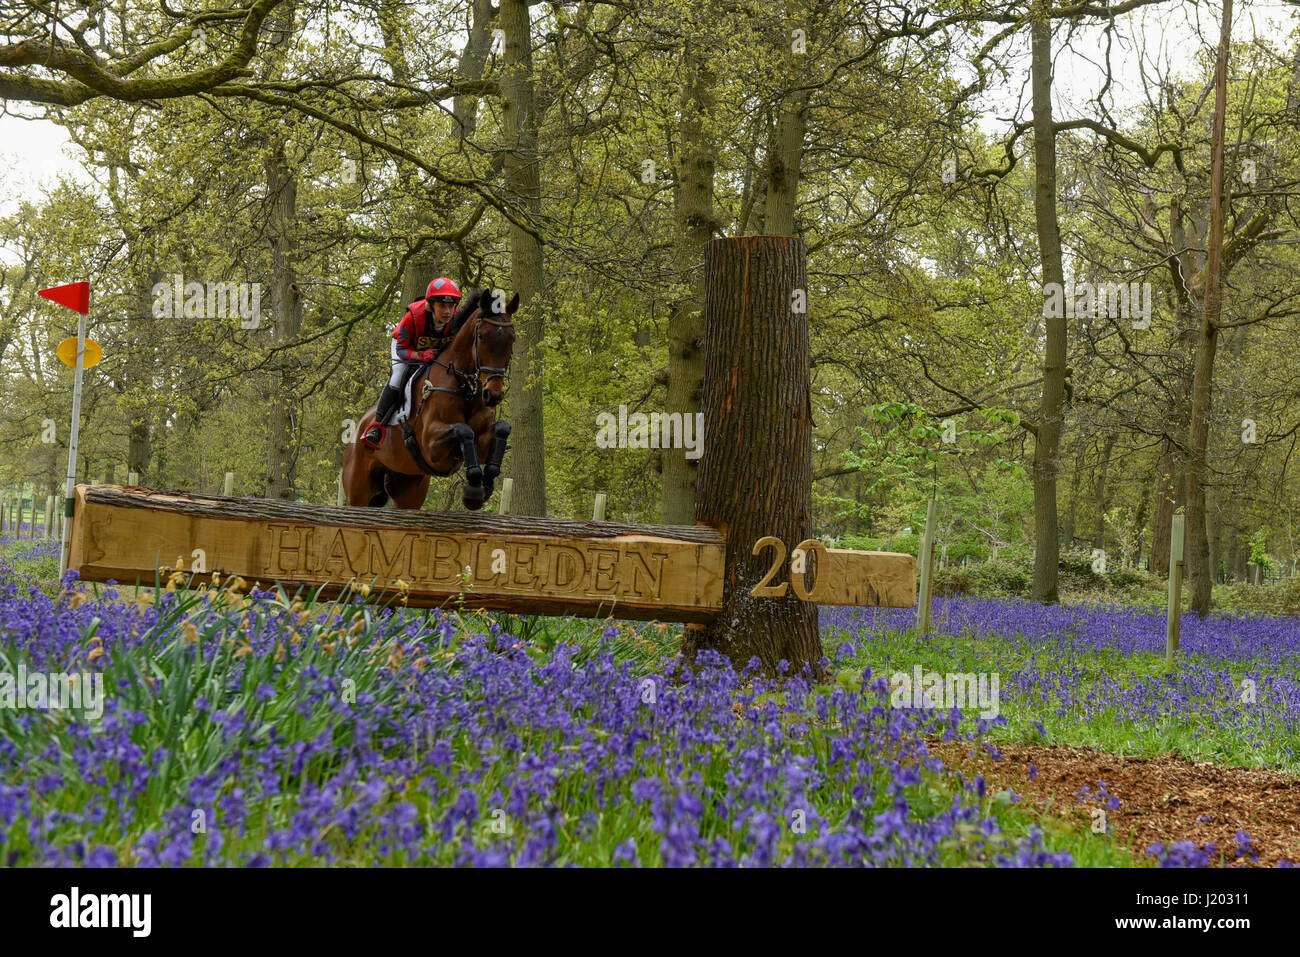 Henley on Thames, UK.  23 April 2017.  Participants take part in the Hambleden Horse Trials.  Celebrating its 20th Stock Photo